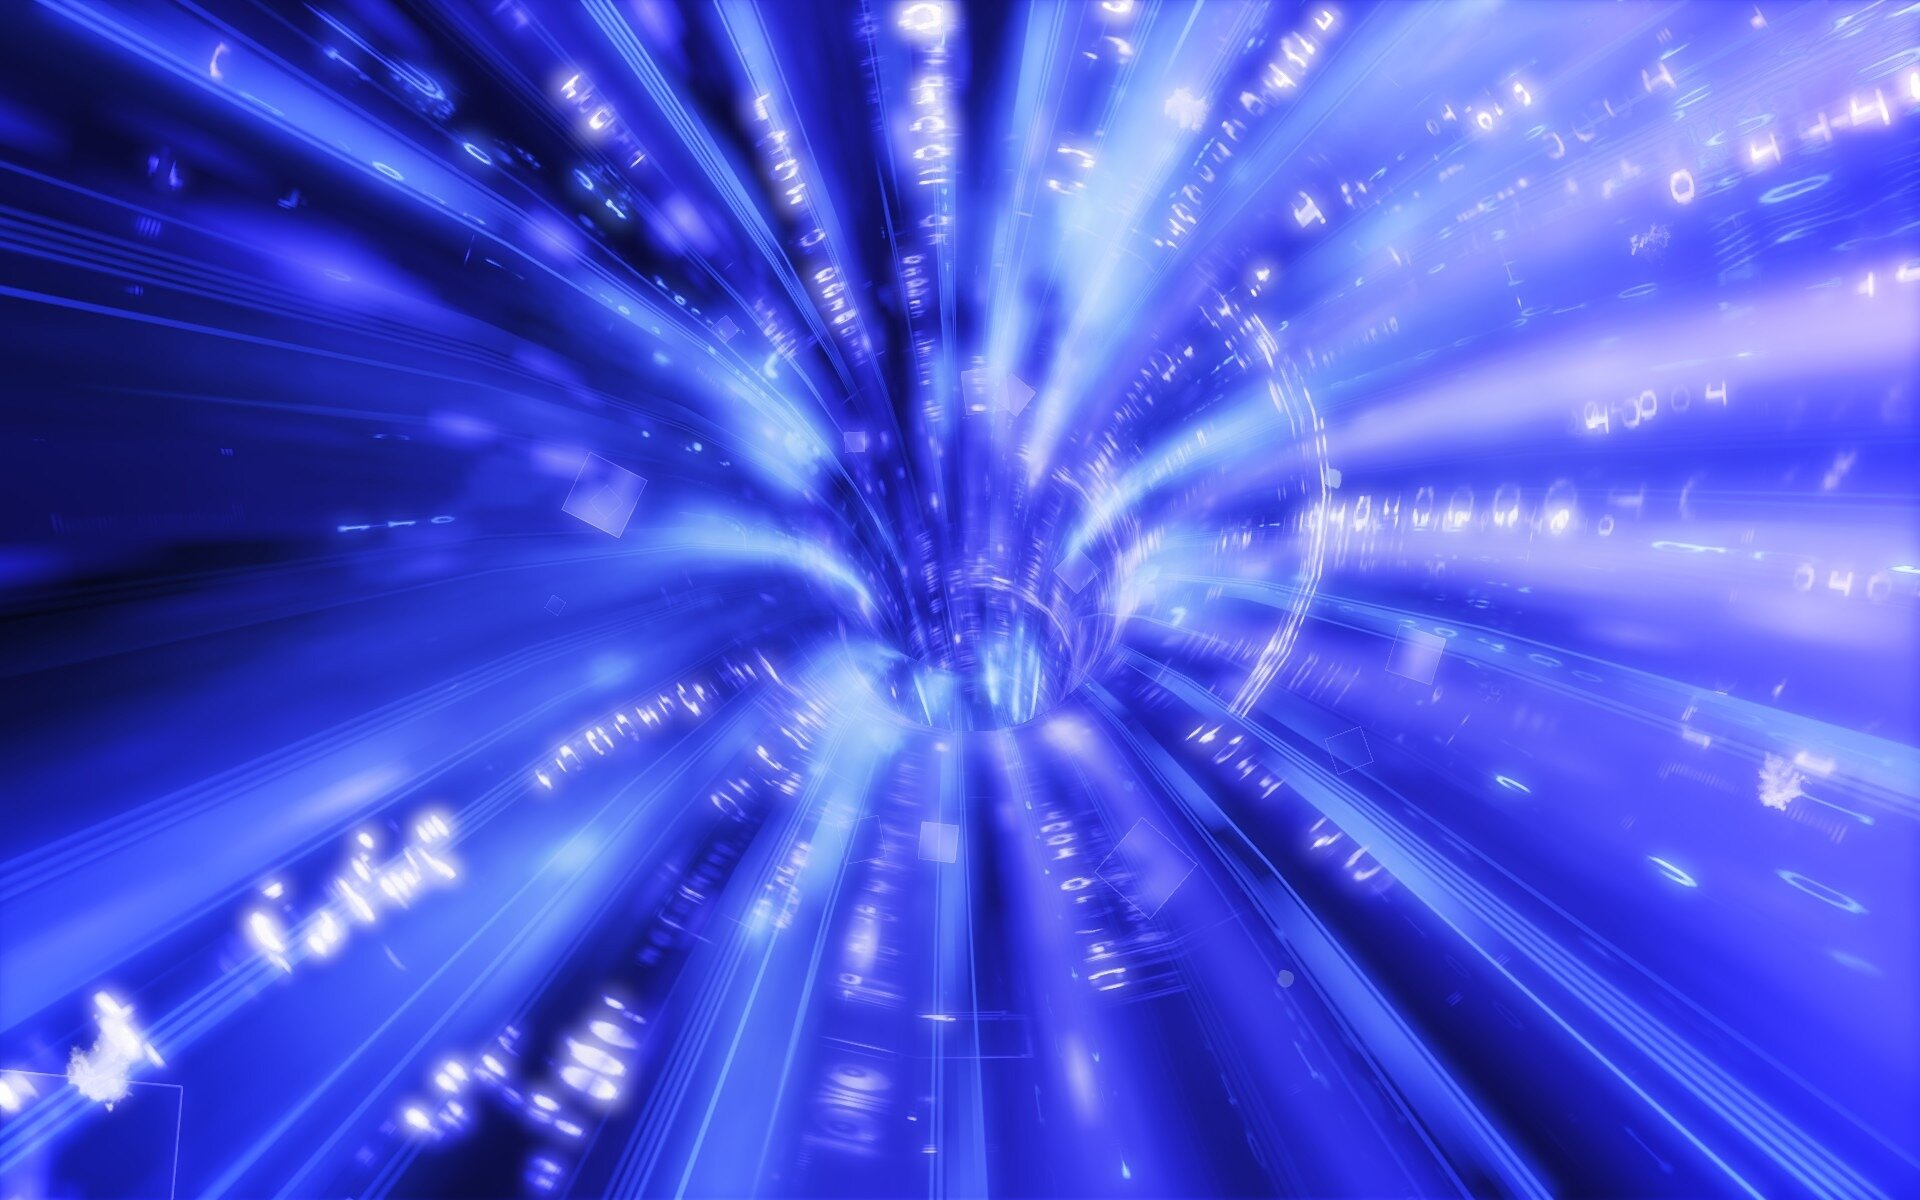 Microscopic wormholes possible in theory